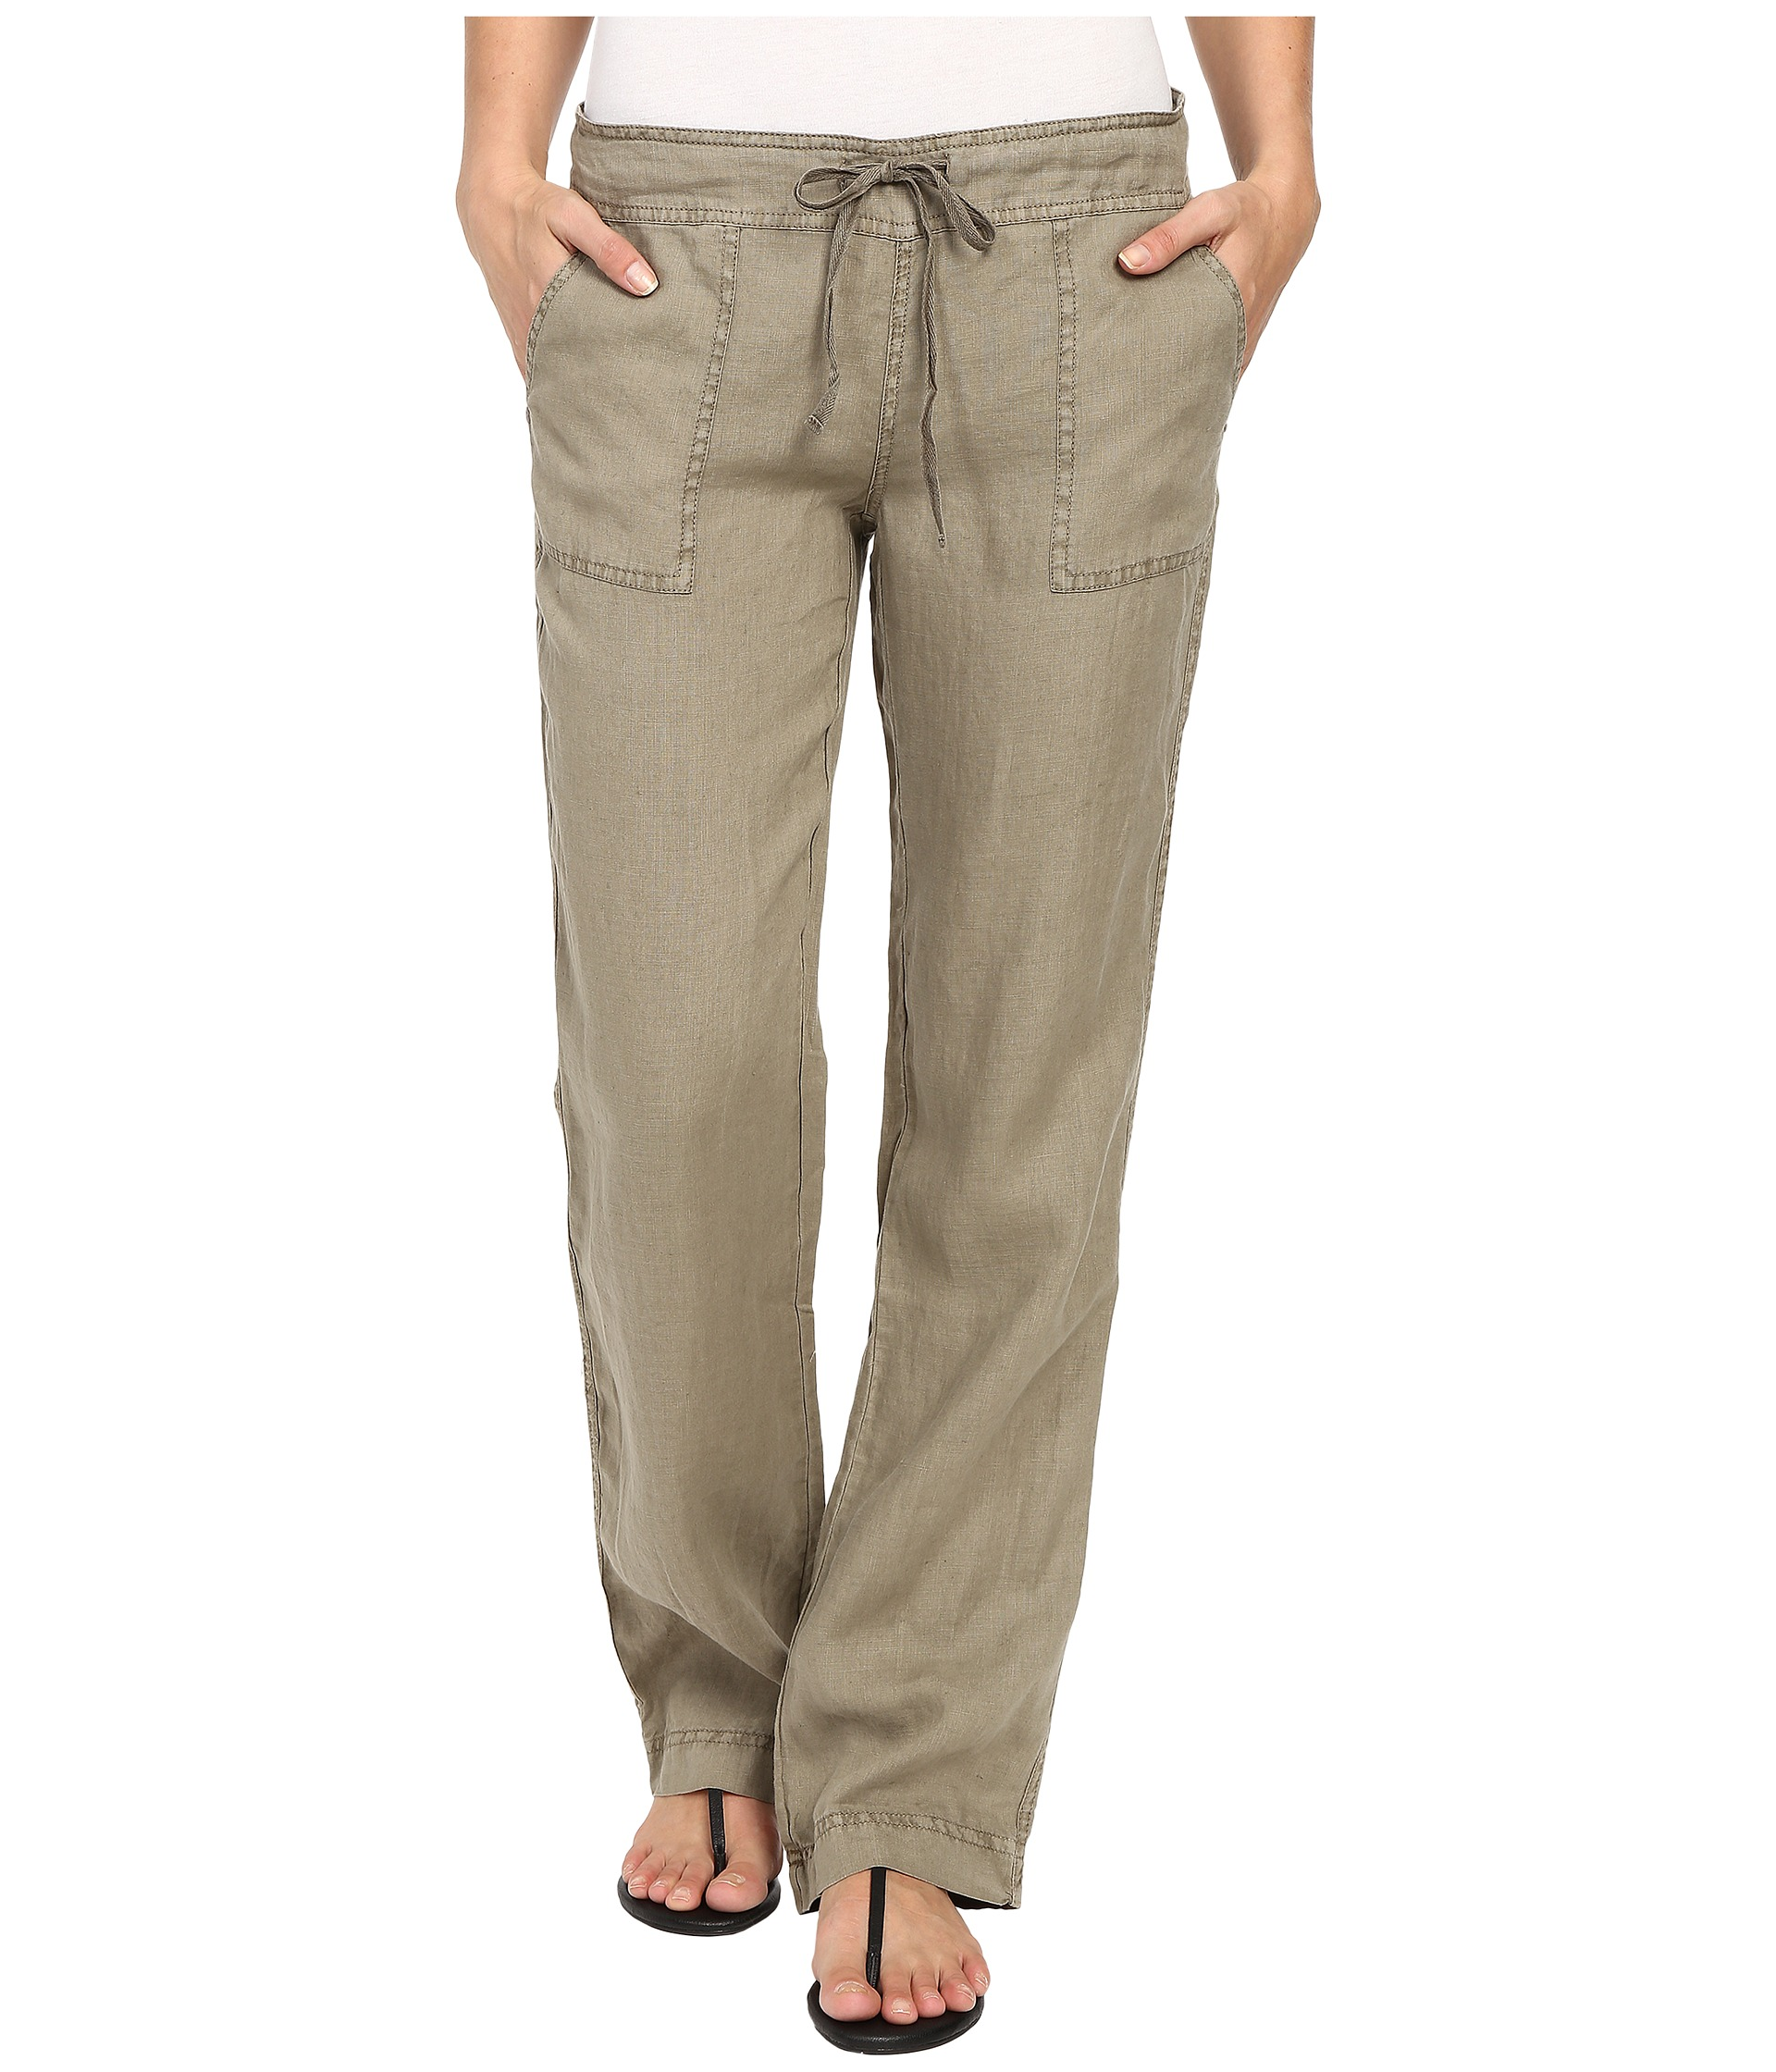 Comments about Drawstring Pants they are very comfortable and can be worn for casual days or matched with a dressy top and look great. i needed something that could be worn with many different items in my wardrobe and this is one of them.